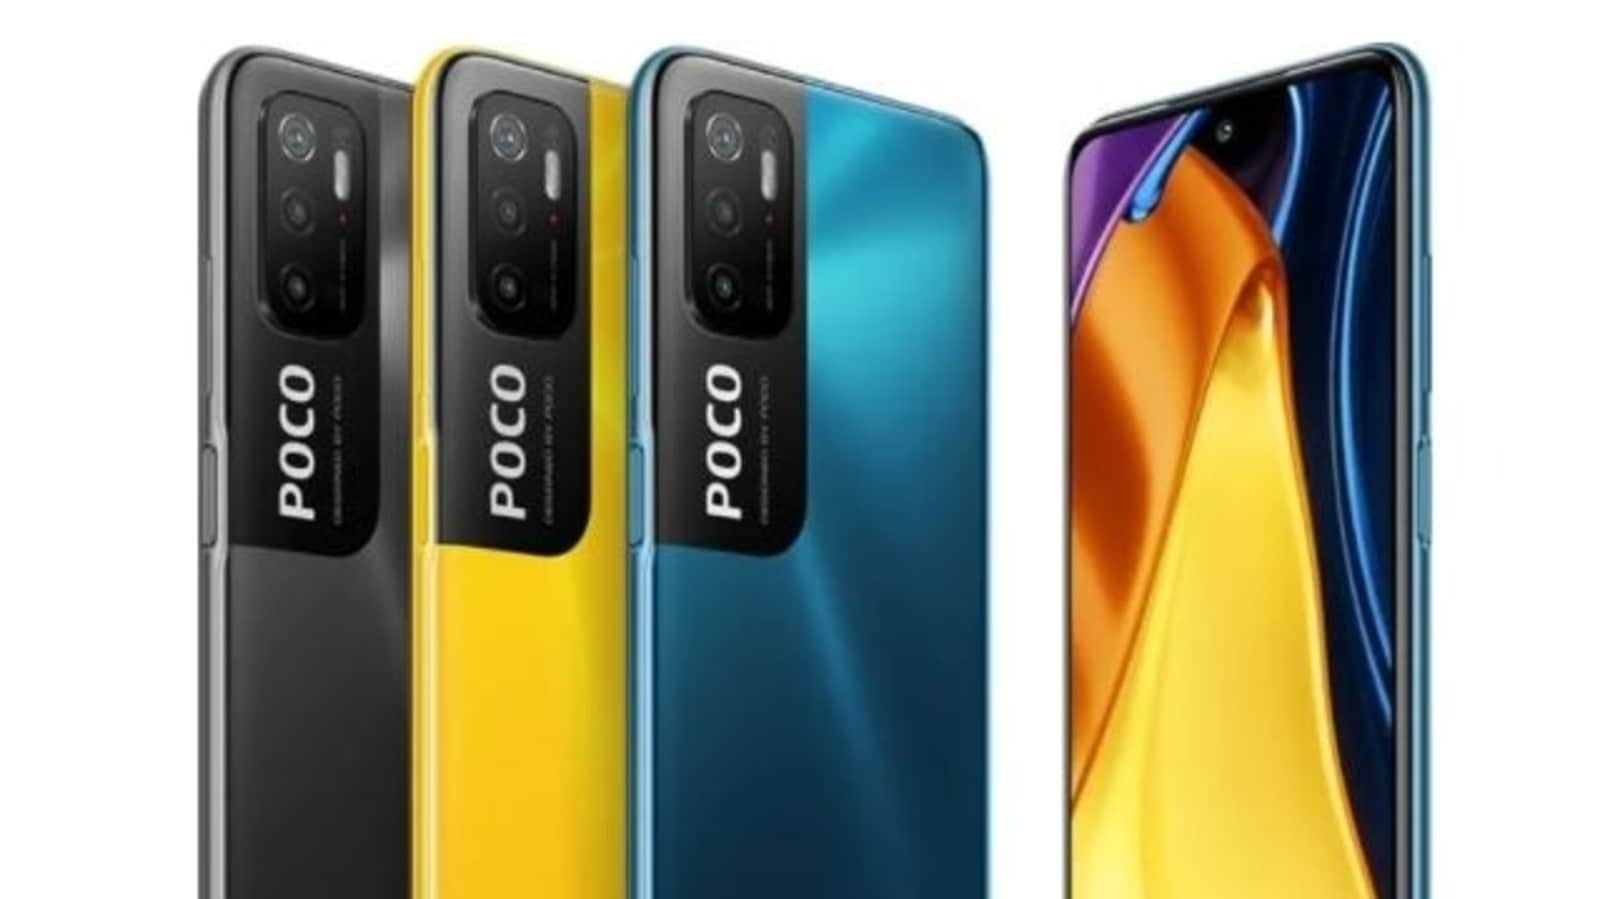 Poco M3 Pro, Realme C25s, iQoo Z3 prices and specifications: all smartphones launched on Tuesday